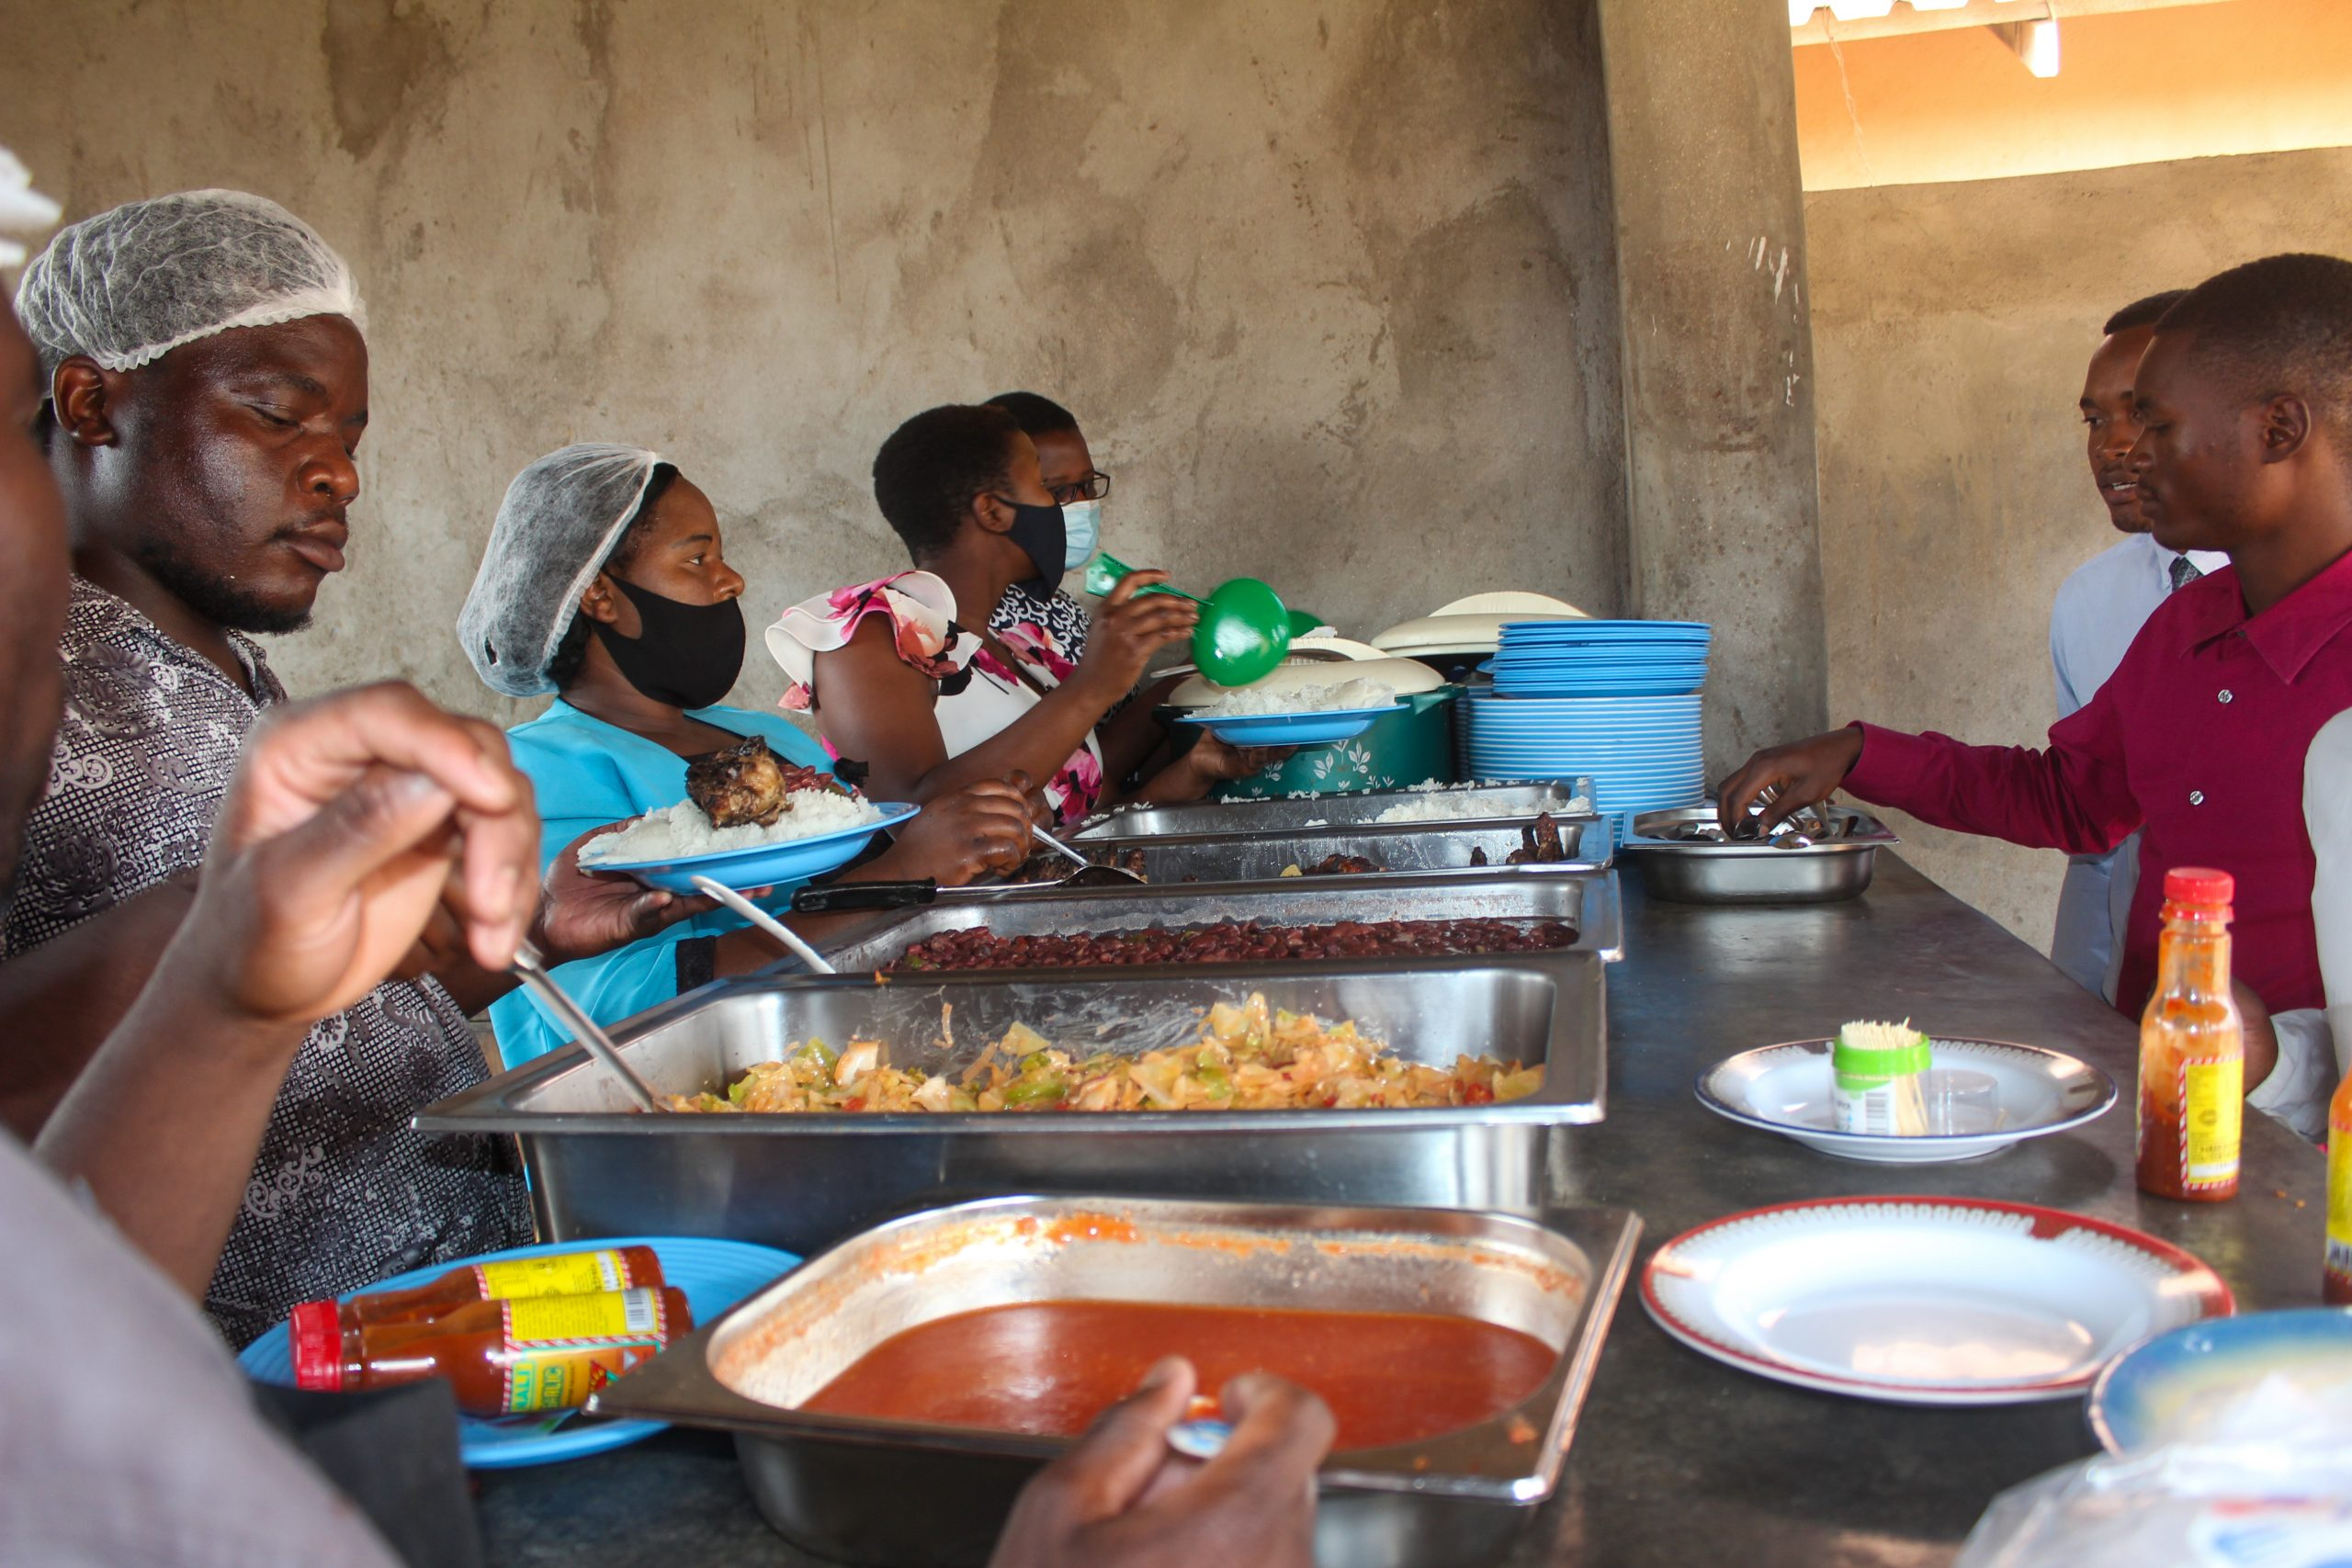 Some of the women serving food to Festival attendees